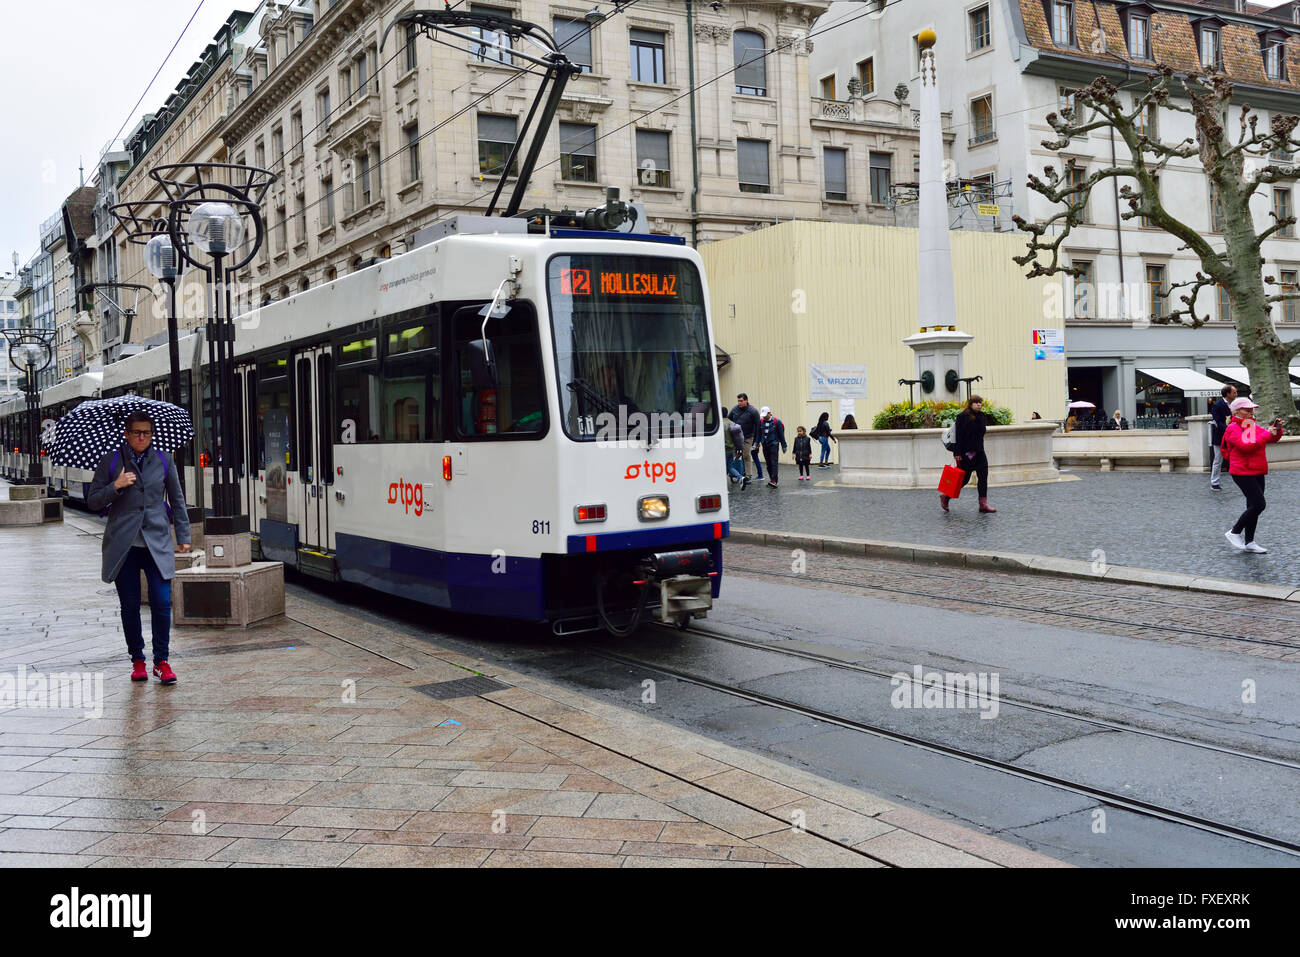 electric tram stock photos electric tram stock images alamy. Black Bedroom Furniture Sets. Home Design Ideas